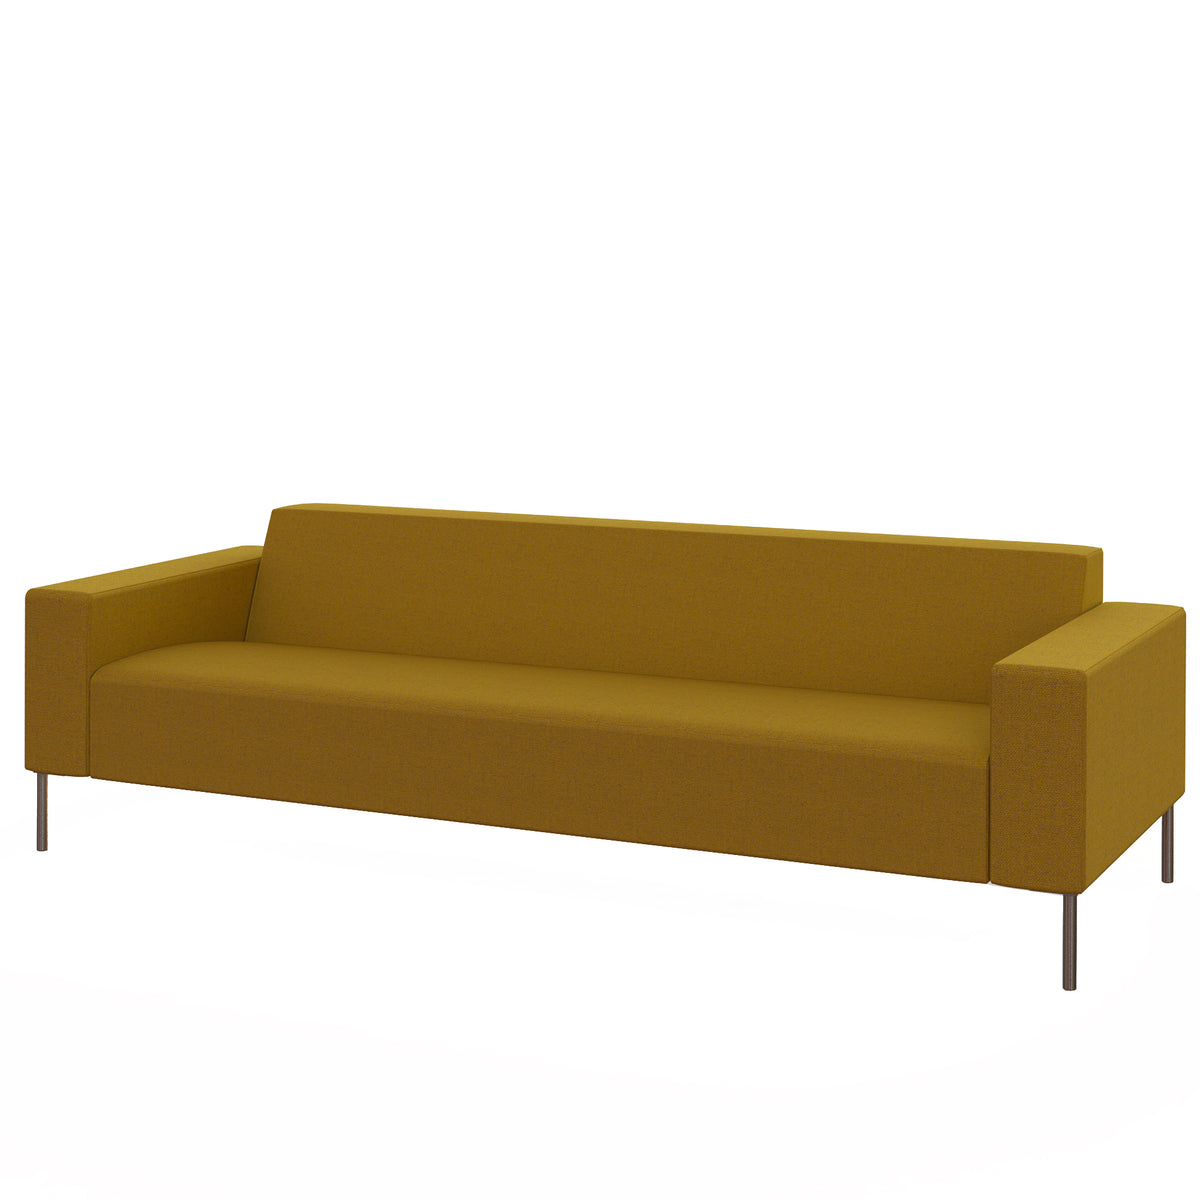 Hitch Mylius HM18 Origin Three Seat Sofa Brushed Stainless Steel Legs Tooting